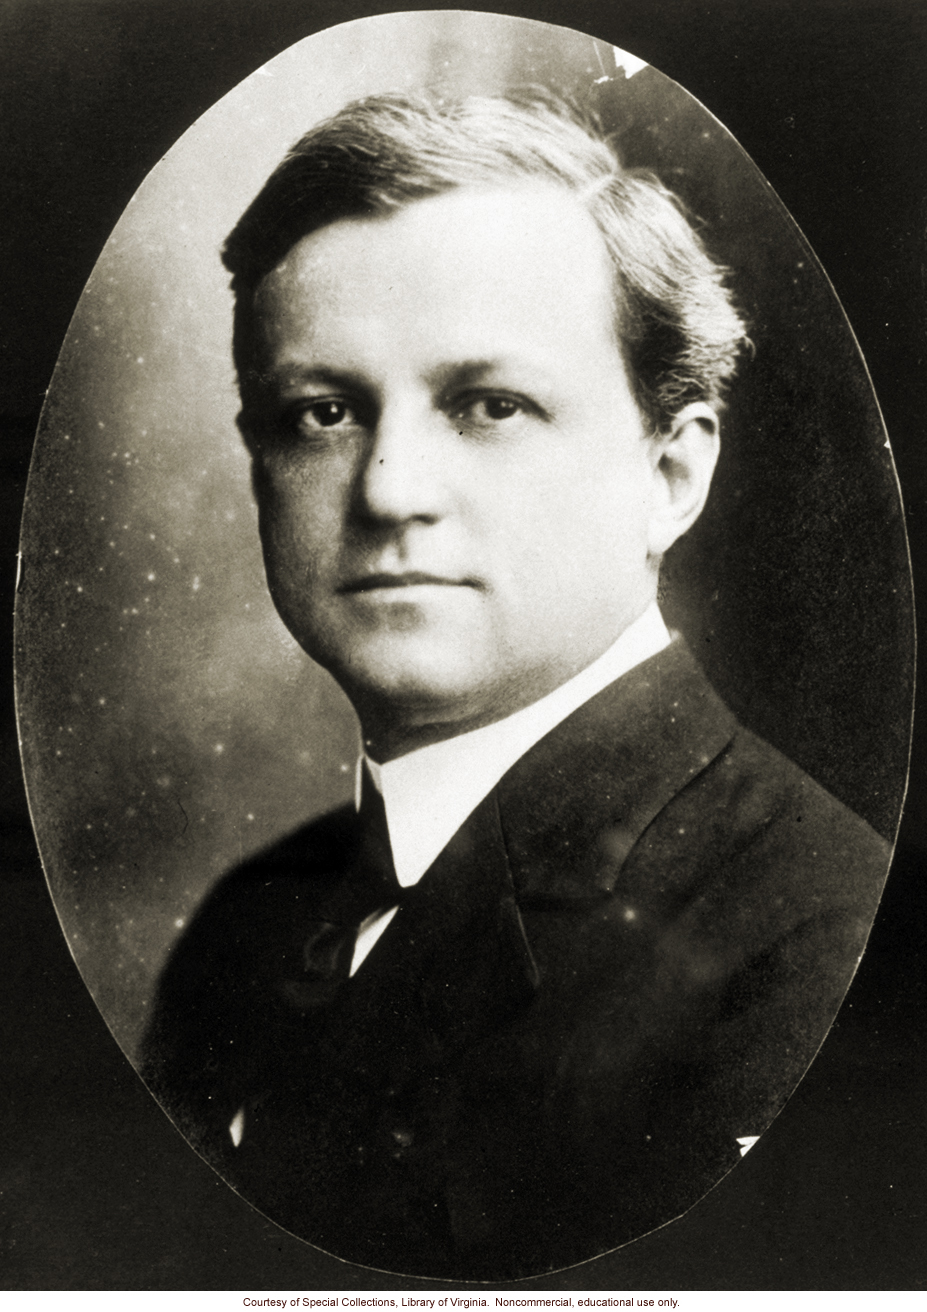 Aubrey Strode, the lawyer who wrote the Virginia sterilization law and who took Buck vs. Bell to the U.S. Supreme Court